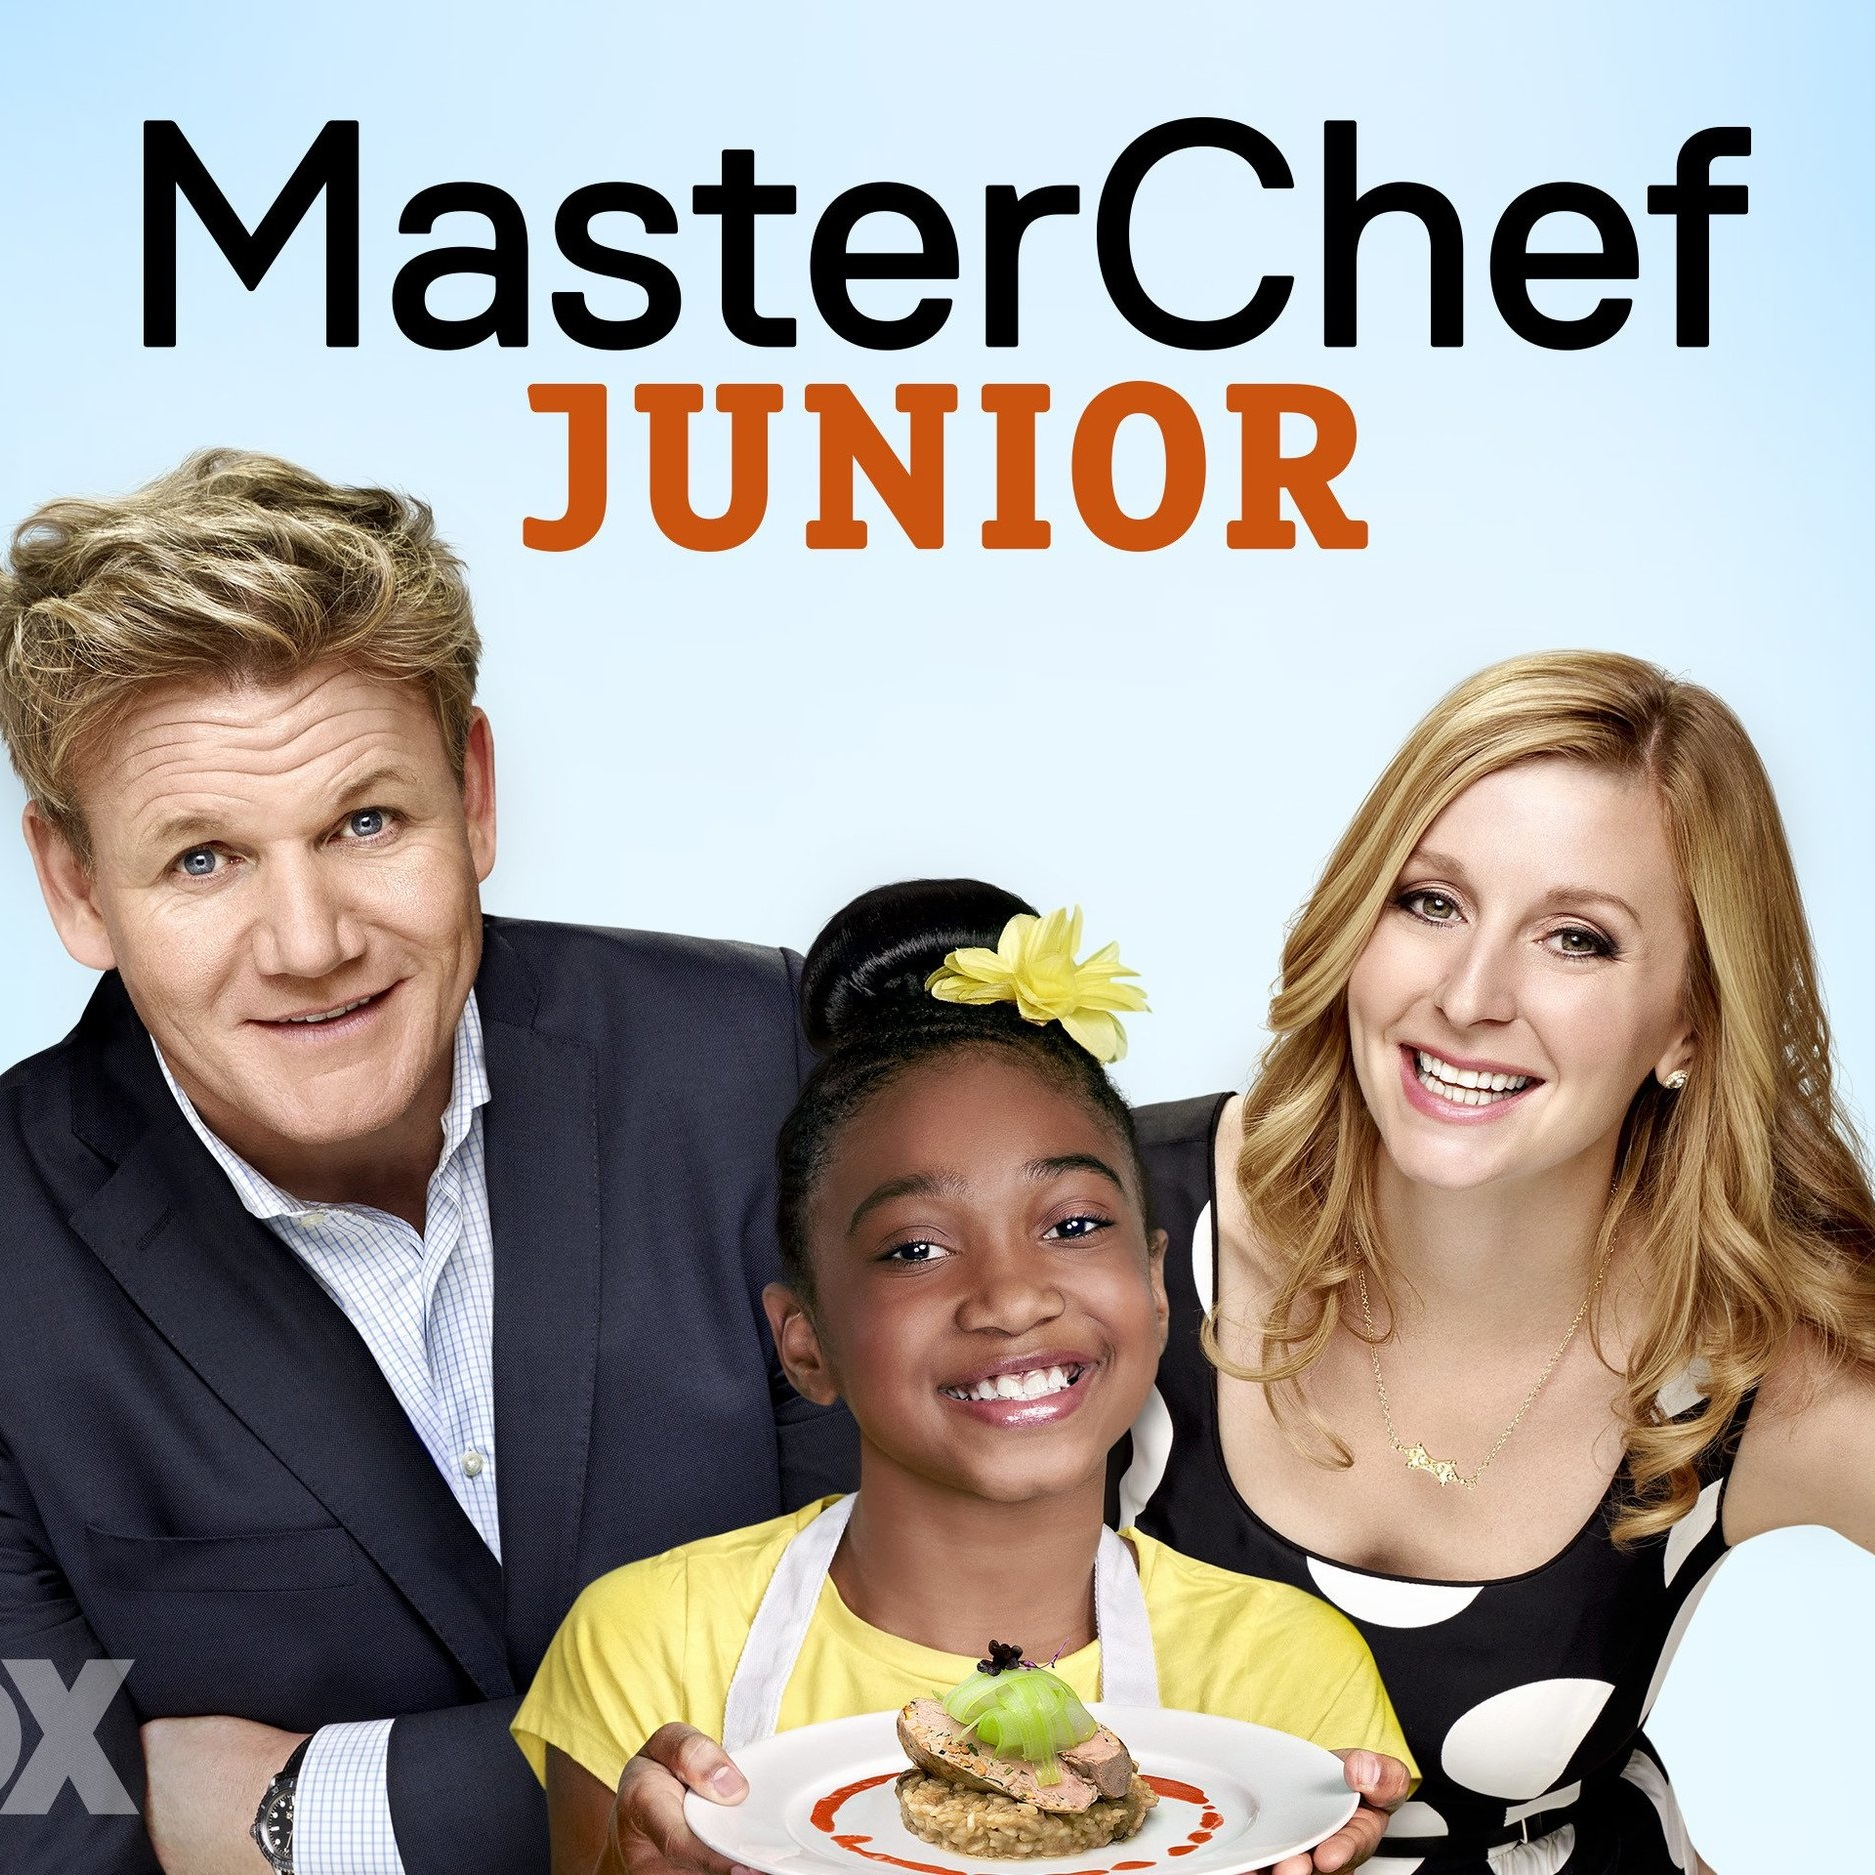 masterchef junior.jpg